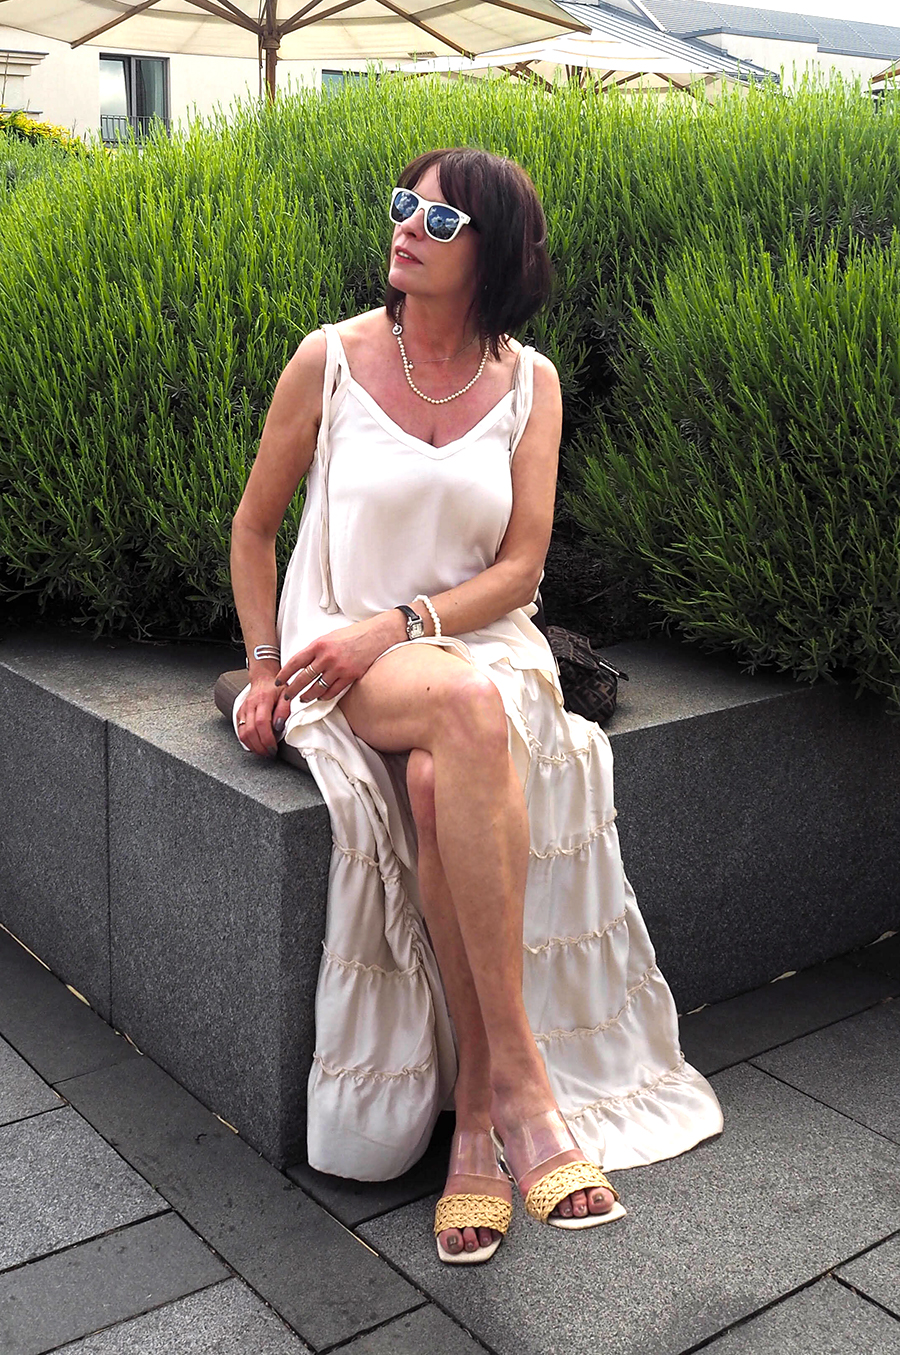 Just-take-a-look Berlin - Shades of Summer Outfit Rooftop Hotel de Rome-3 Kopie